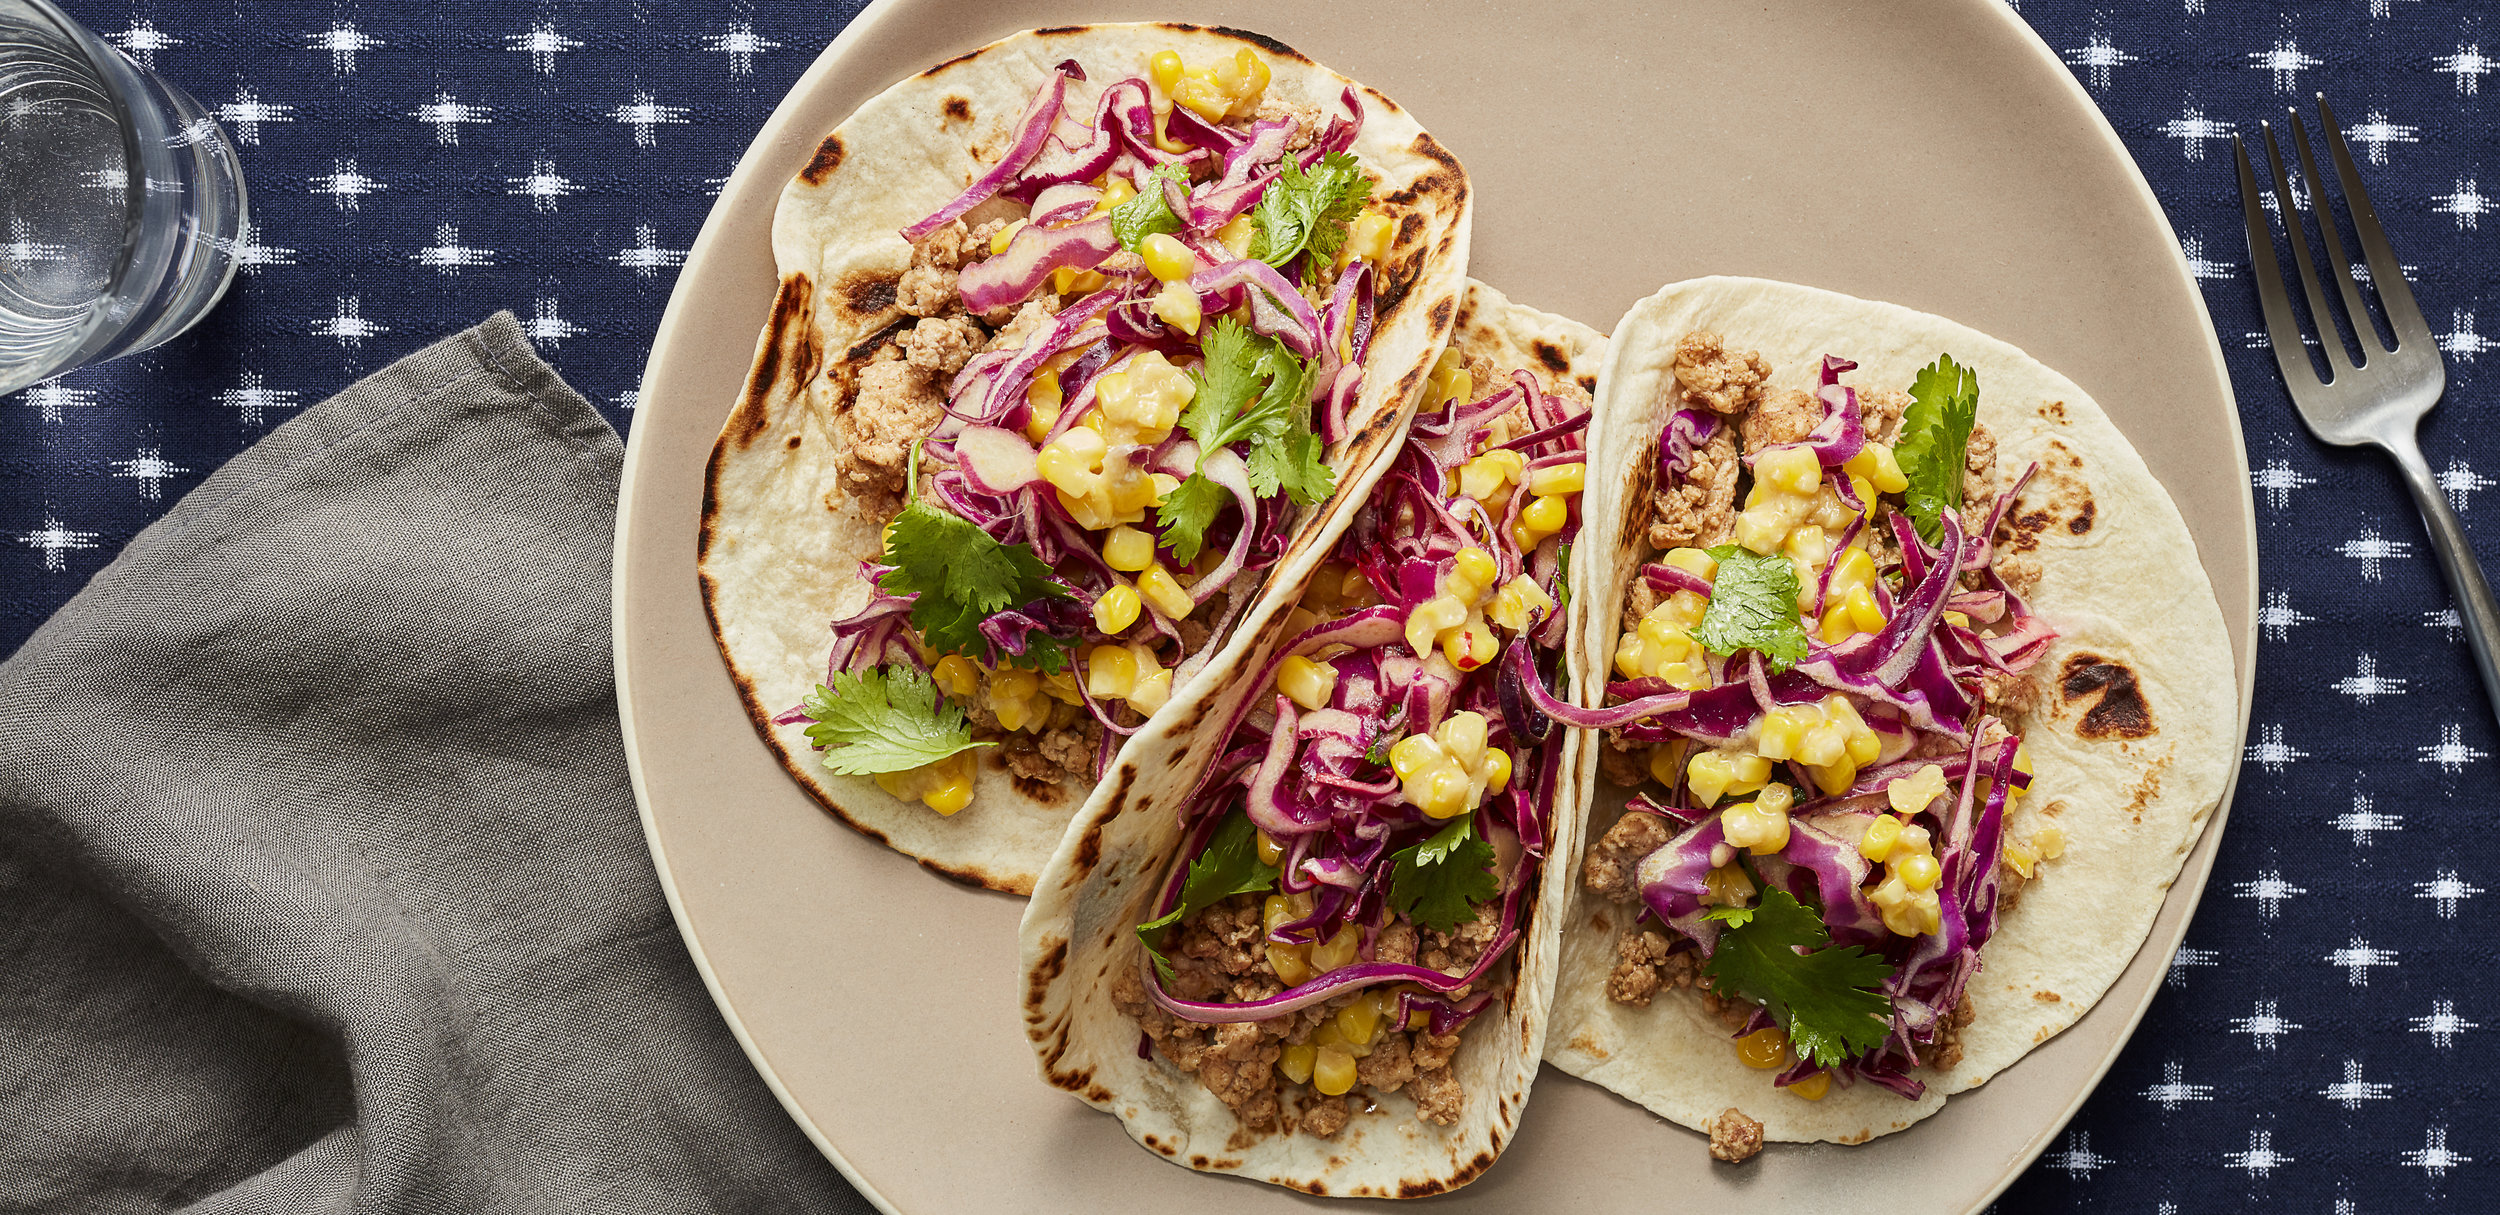 Hoisin Pork Tacos with Miso Corn and Cabbage Cilantro Slaw — 0191 — HERO.jpg